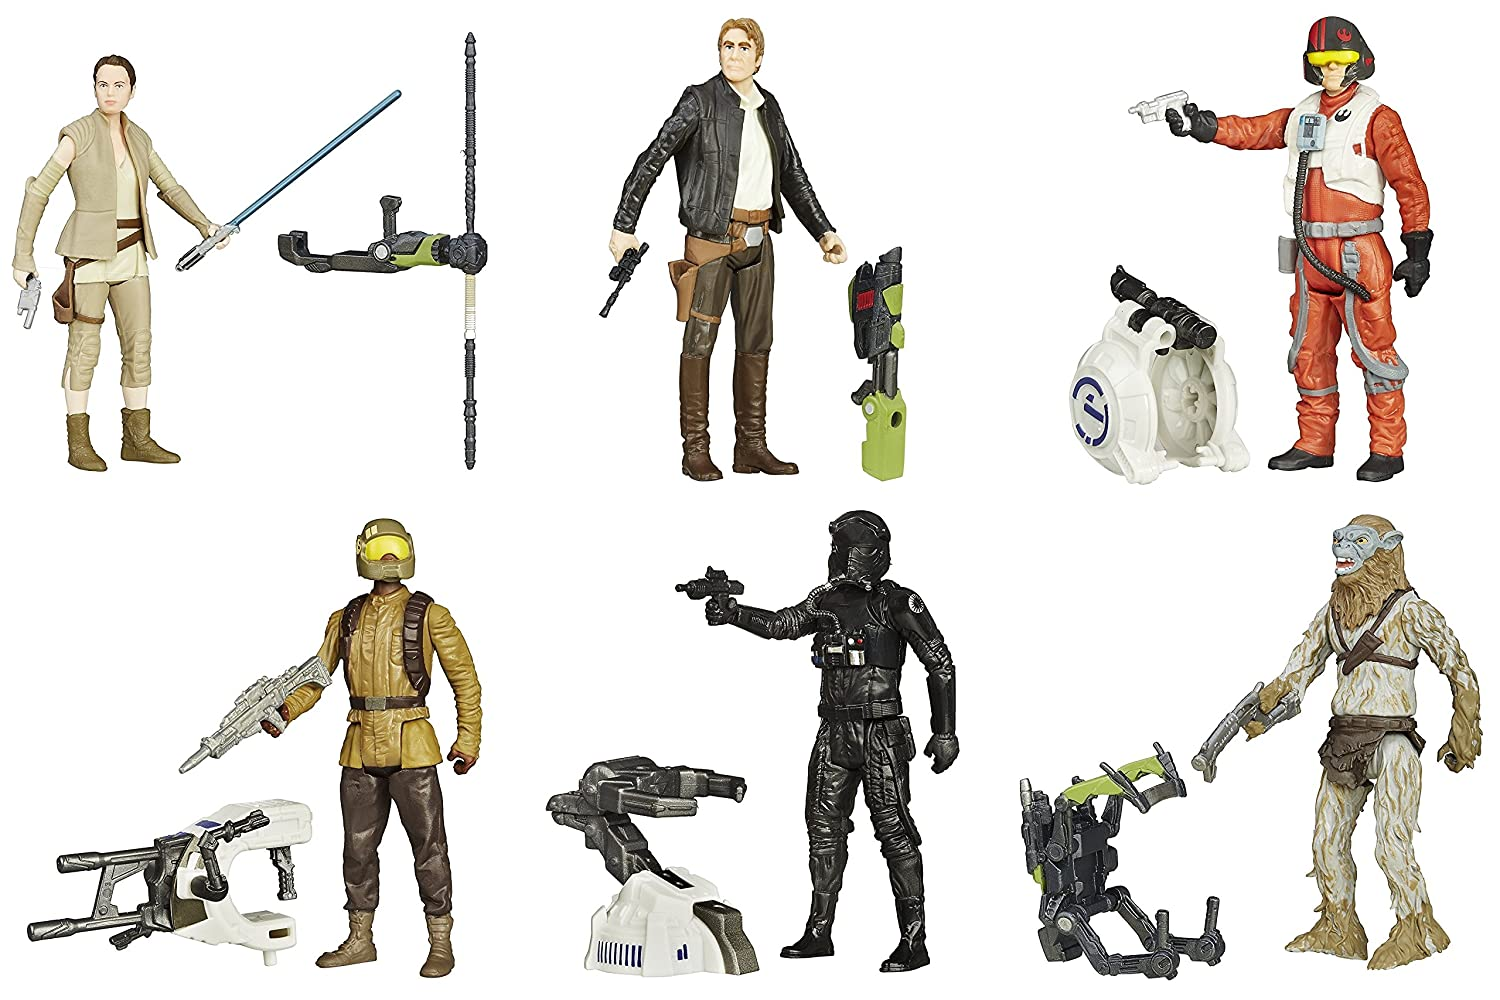 Poe Dameron Resistance Trooper Star Wars Force Awakens 3.75-Inch 6 Figure Pack with Rey Resistance Outifit Han Solo TIE Fighter Pilot /& Hassk Thug Hasbro